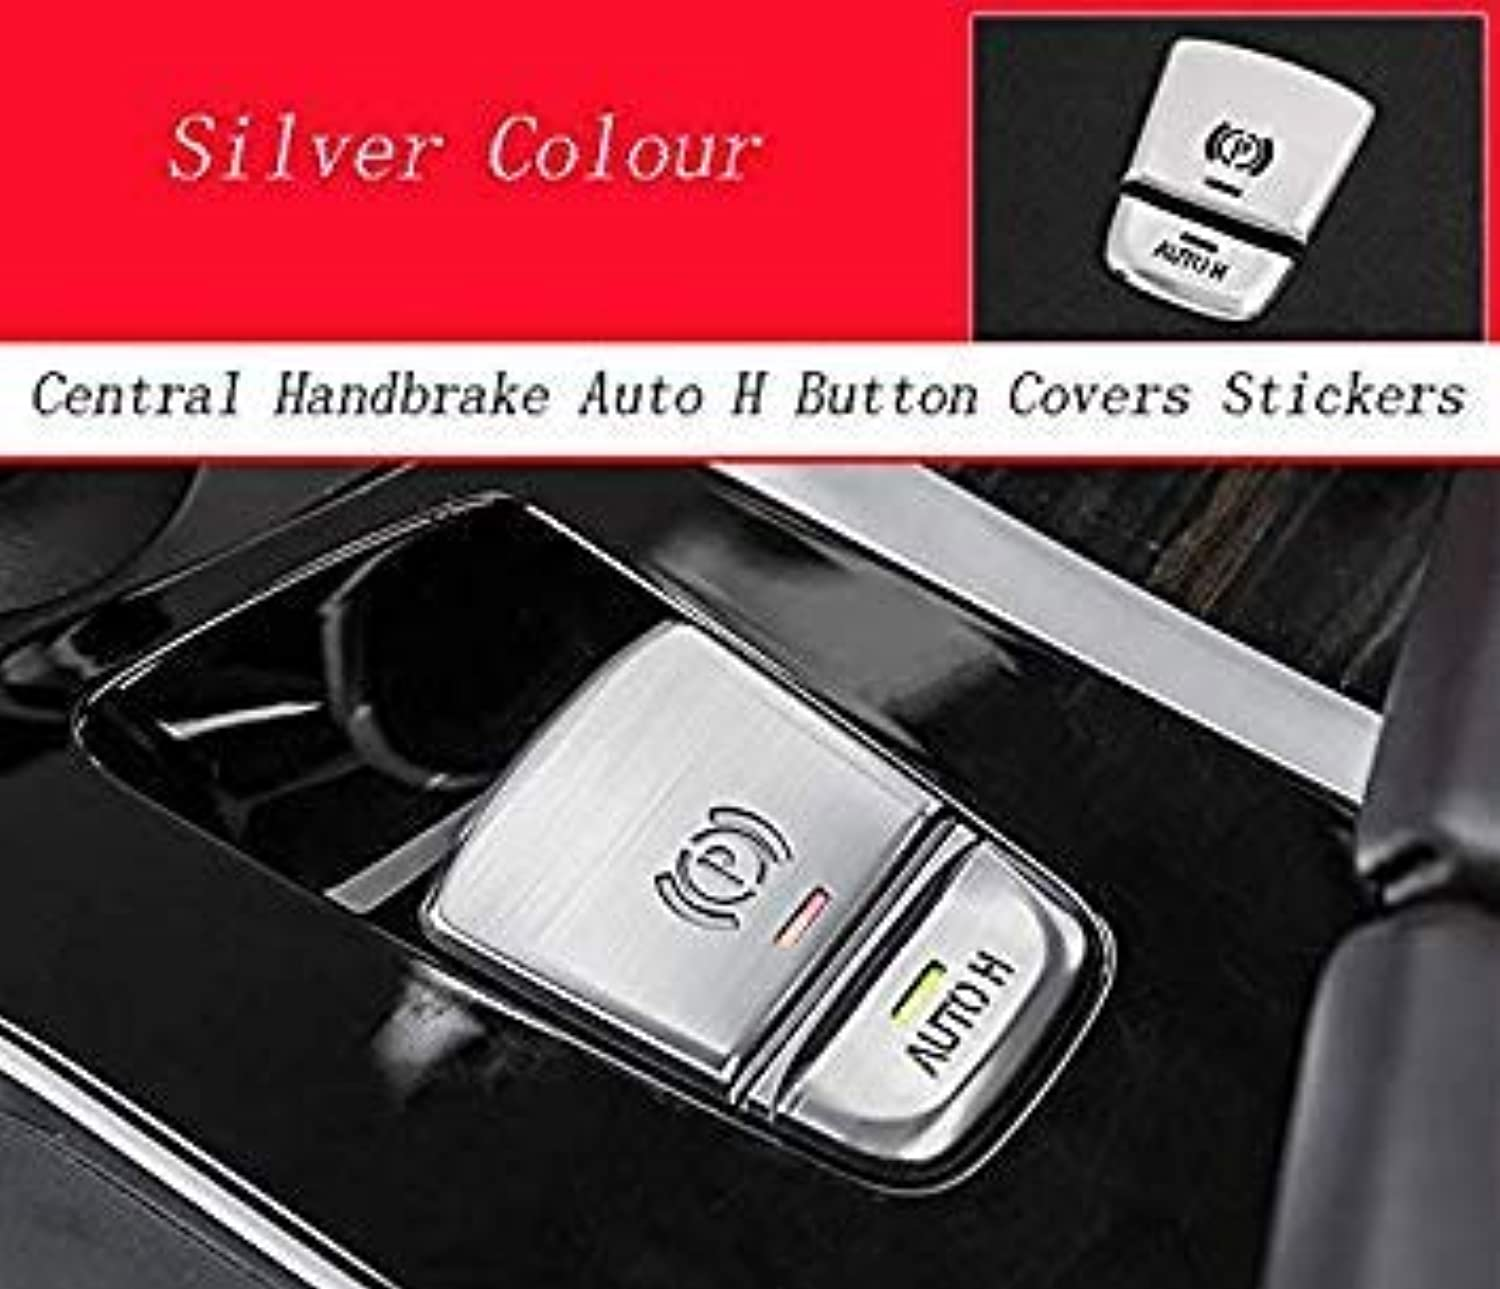 Car Styling Interior Metal Multimedia Buttons Cover Decorative Trim Stickers Accessories for BMW 5 Series G30 G38 Accessories color Name Silver